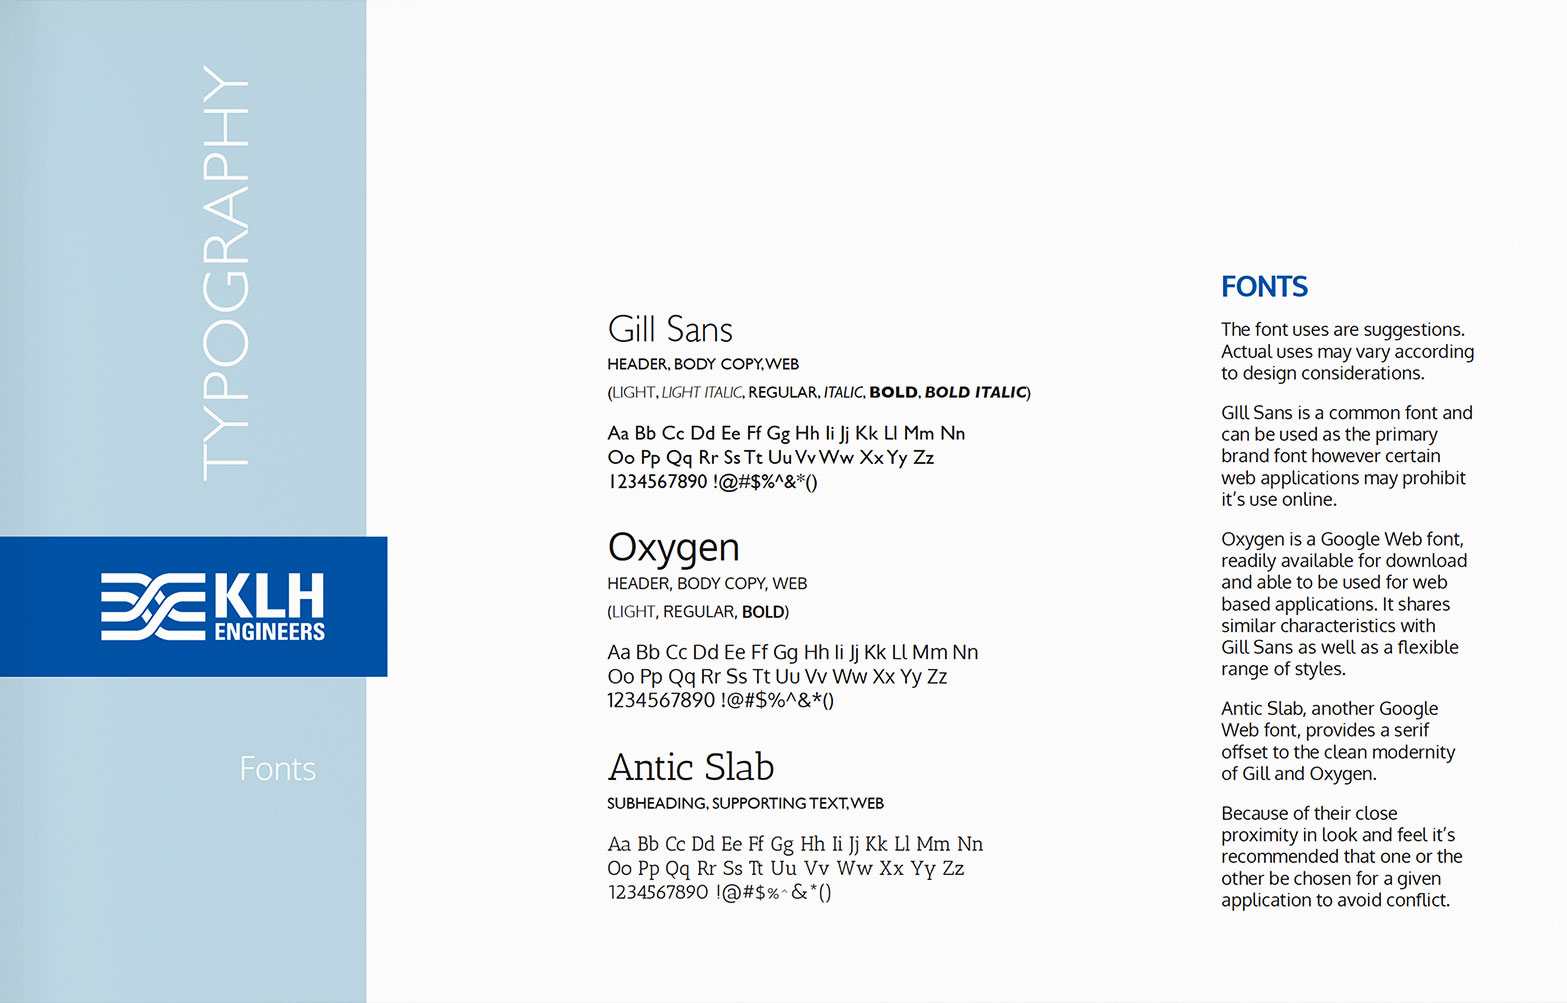 Typography - KLH Engineers Brand Guidelines